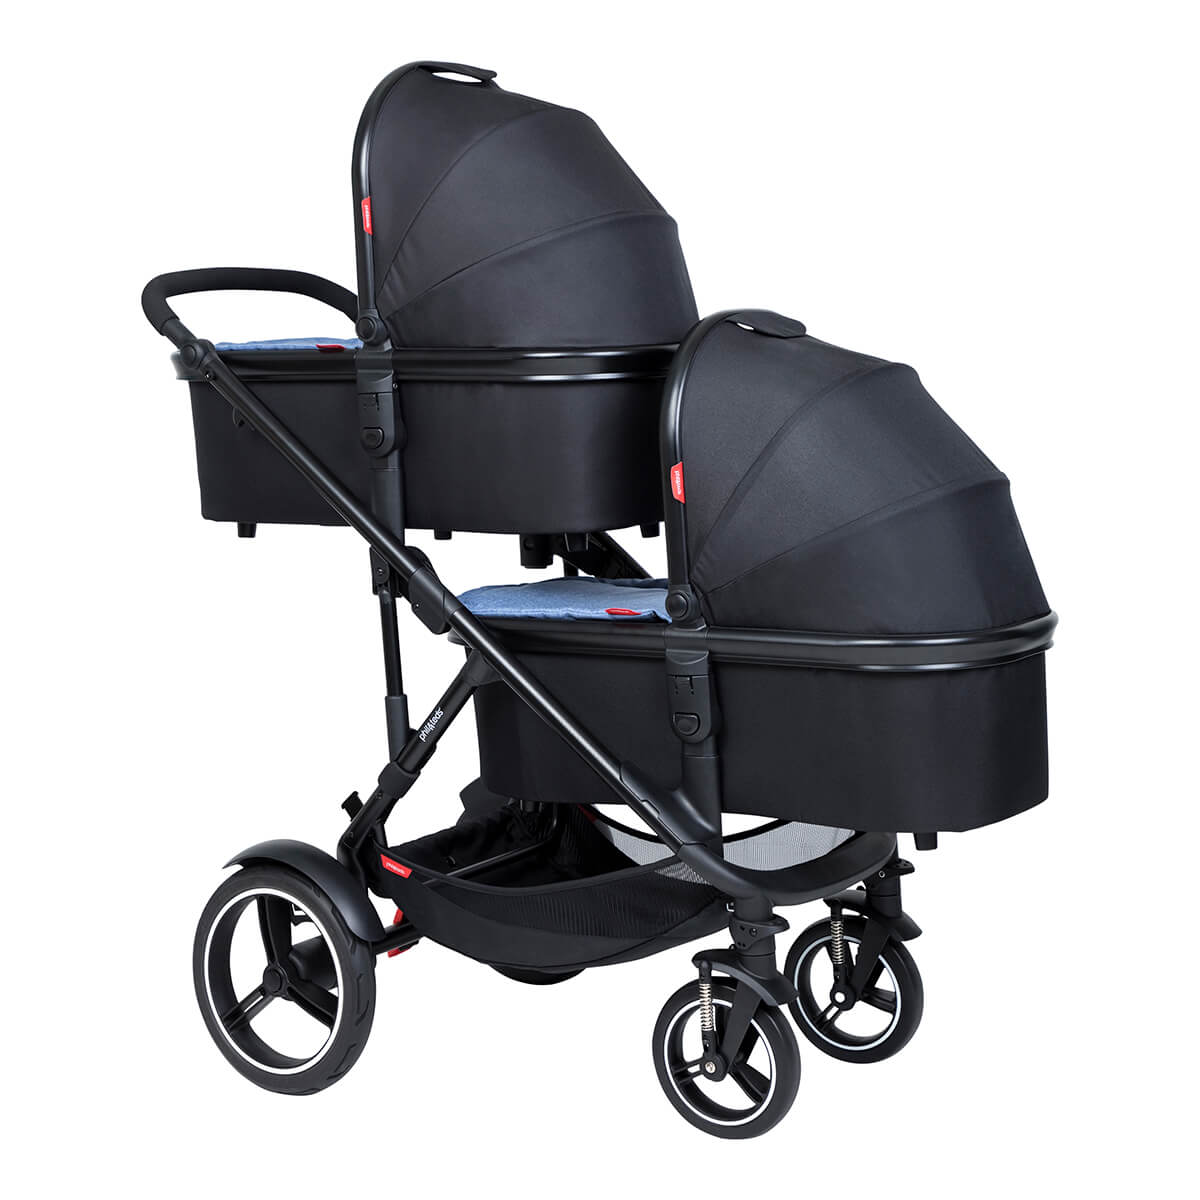 https://cdn.accentuate.io/4390319587424/19440099983544/philteds-voyager-inline-buggy-with-double-snug-carrycots-v1633401038955.jpg?1200x1200